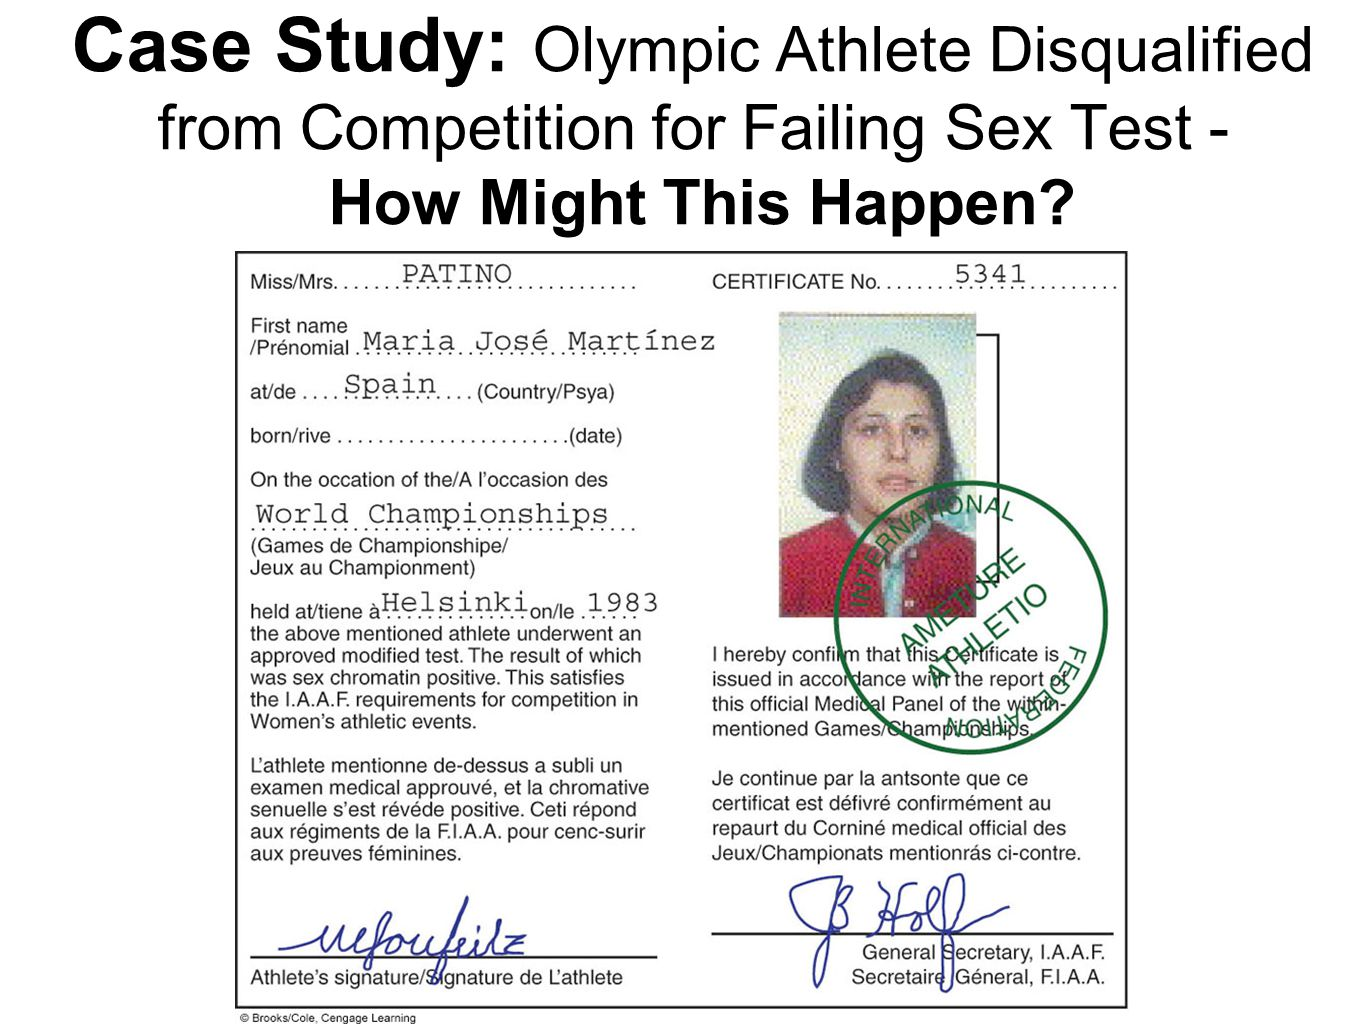 Case Study: Olympic Athlete Disqualified from Competition for Failing Sex Test - How Might This Happen?